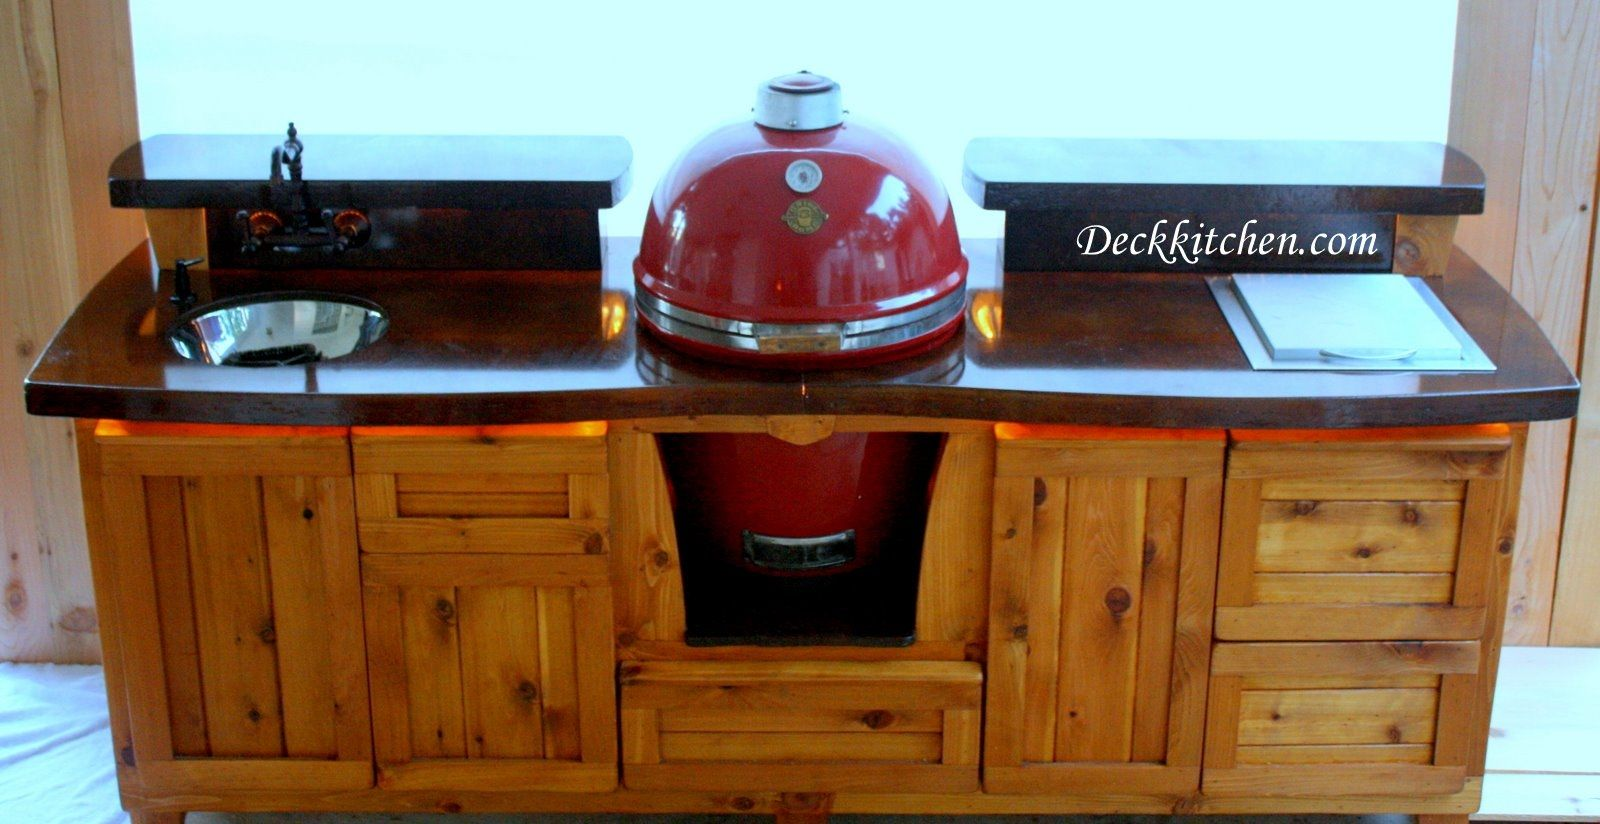 hand crafted all in one kitchen by deck kitchen. Black Bedroom Furniture Sets. Home Design Ideas